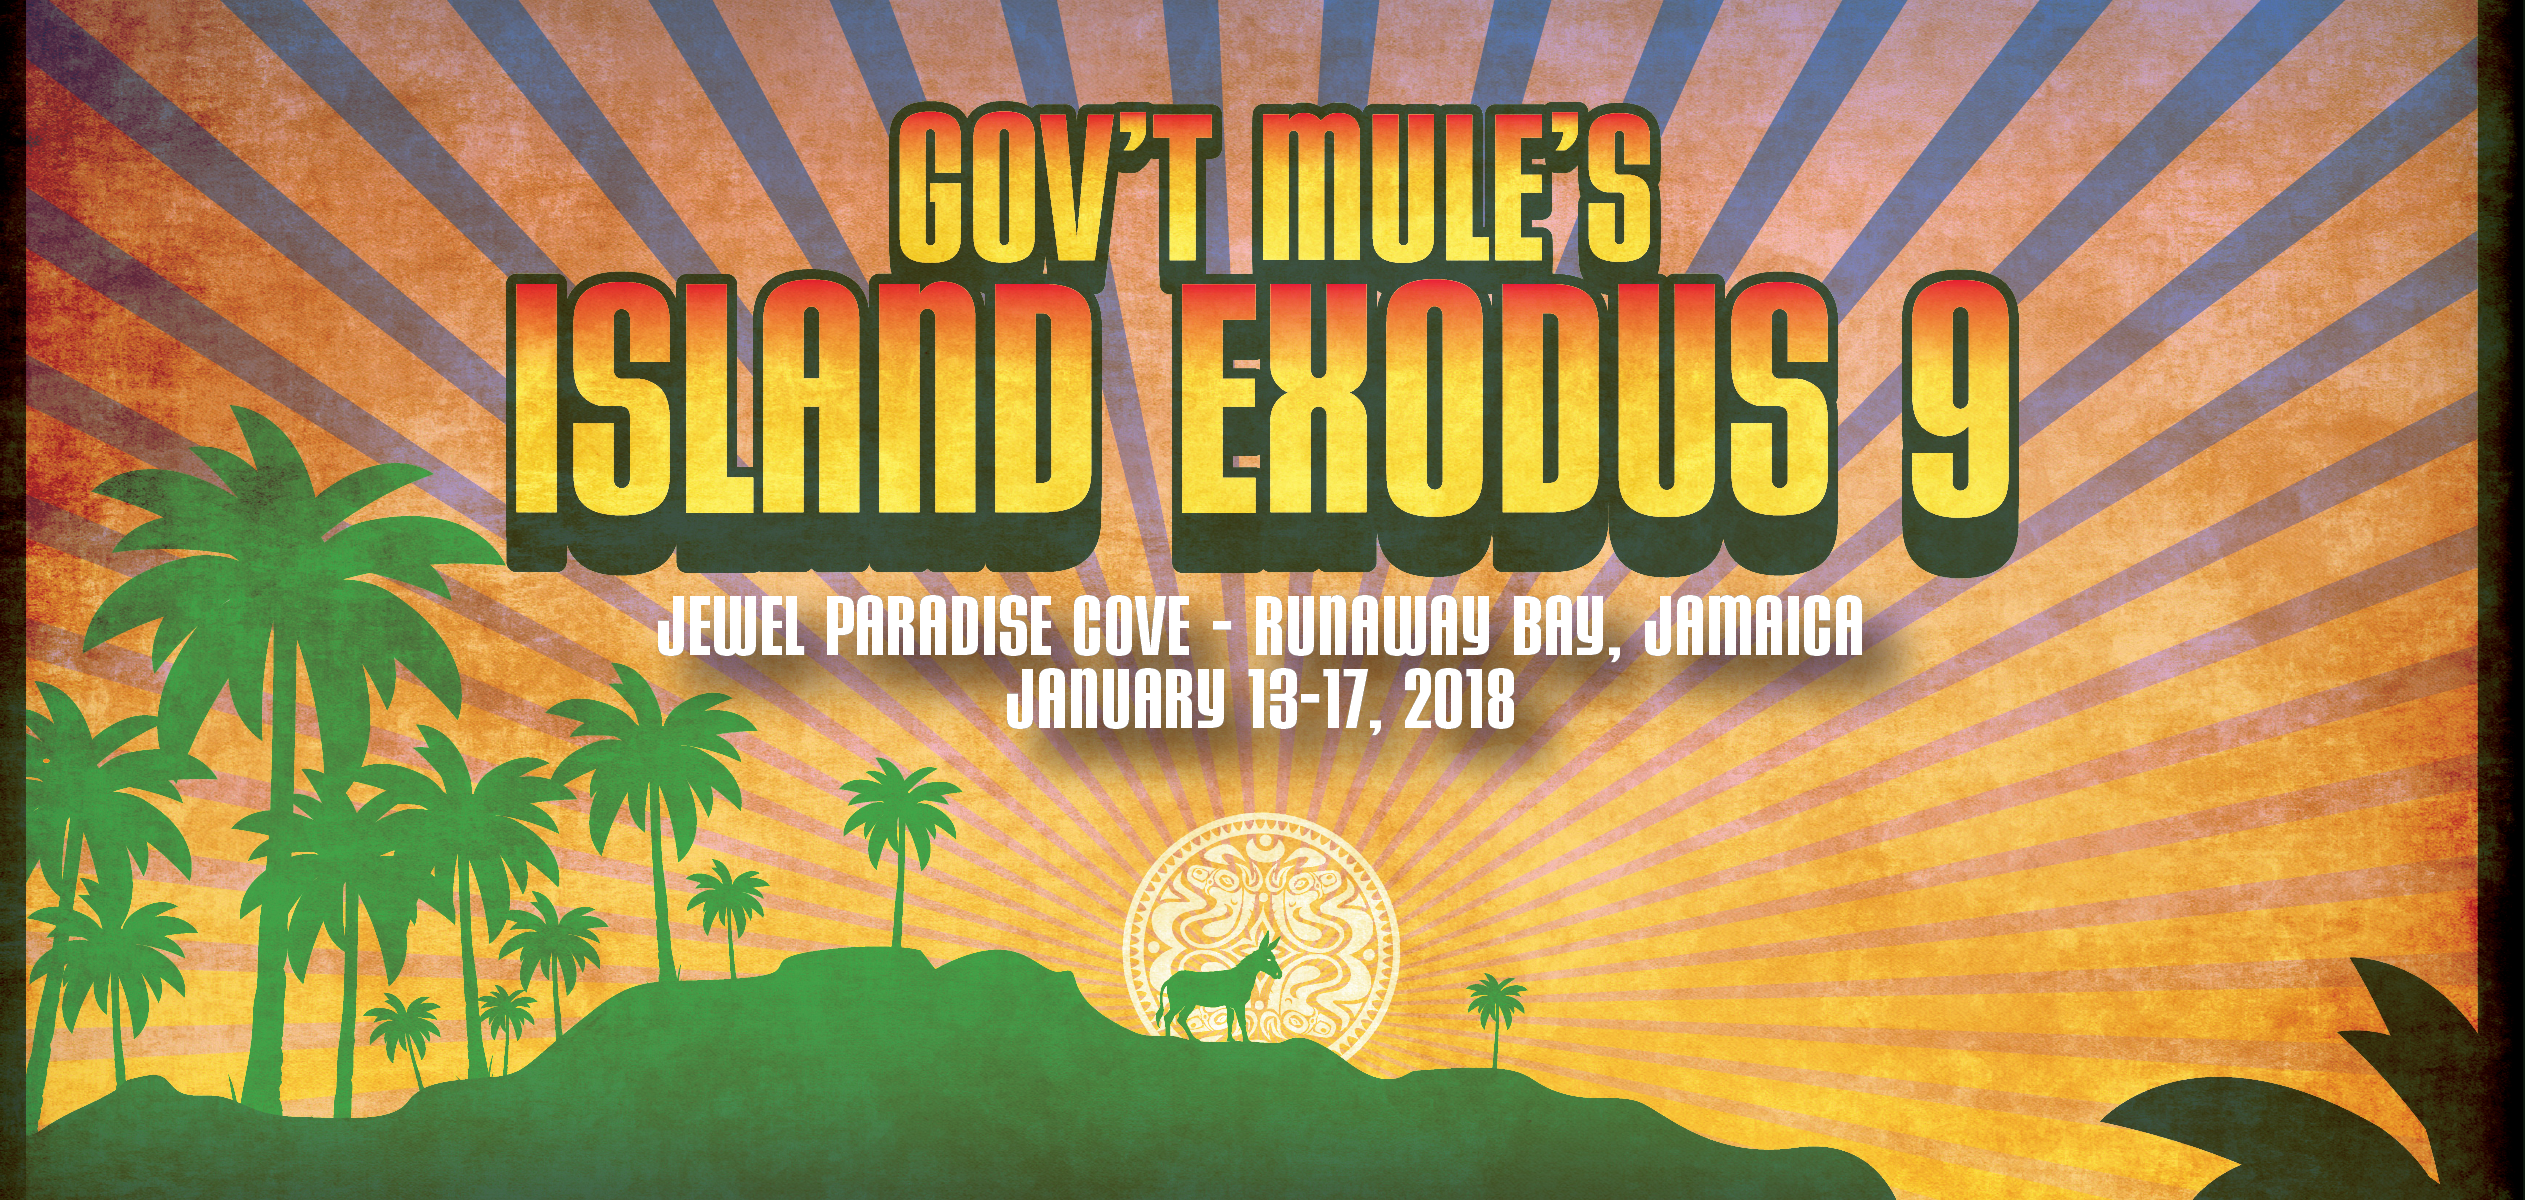 Island Exodus 9 Artist and On-Sale Announcement